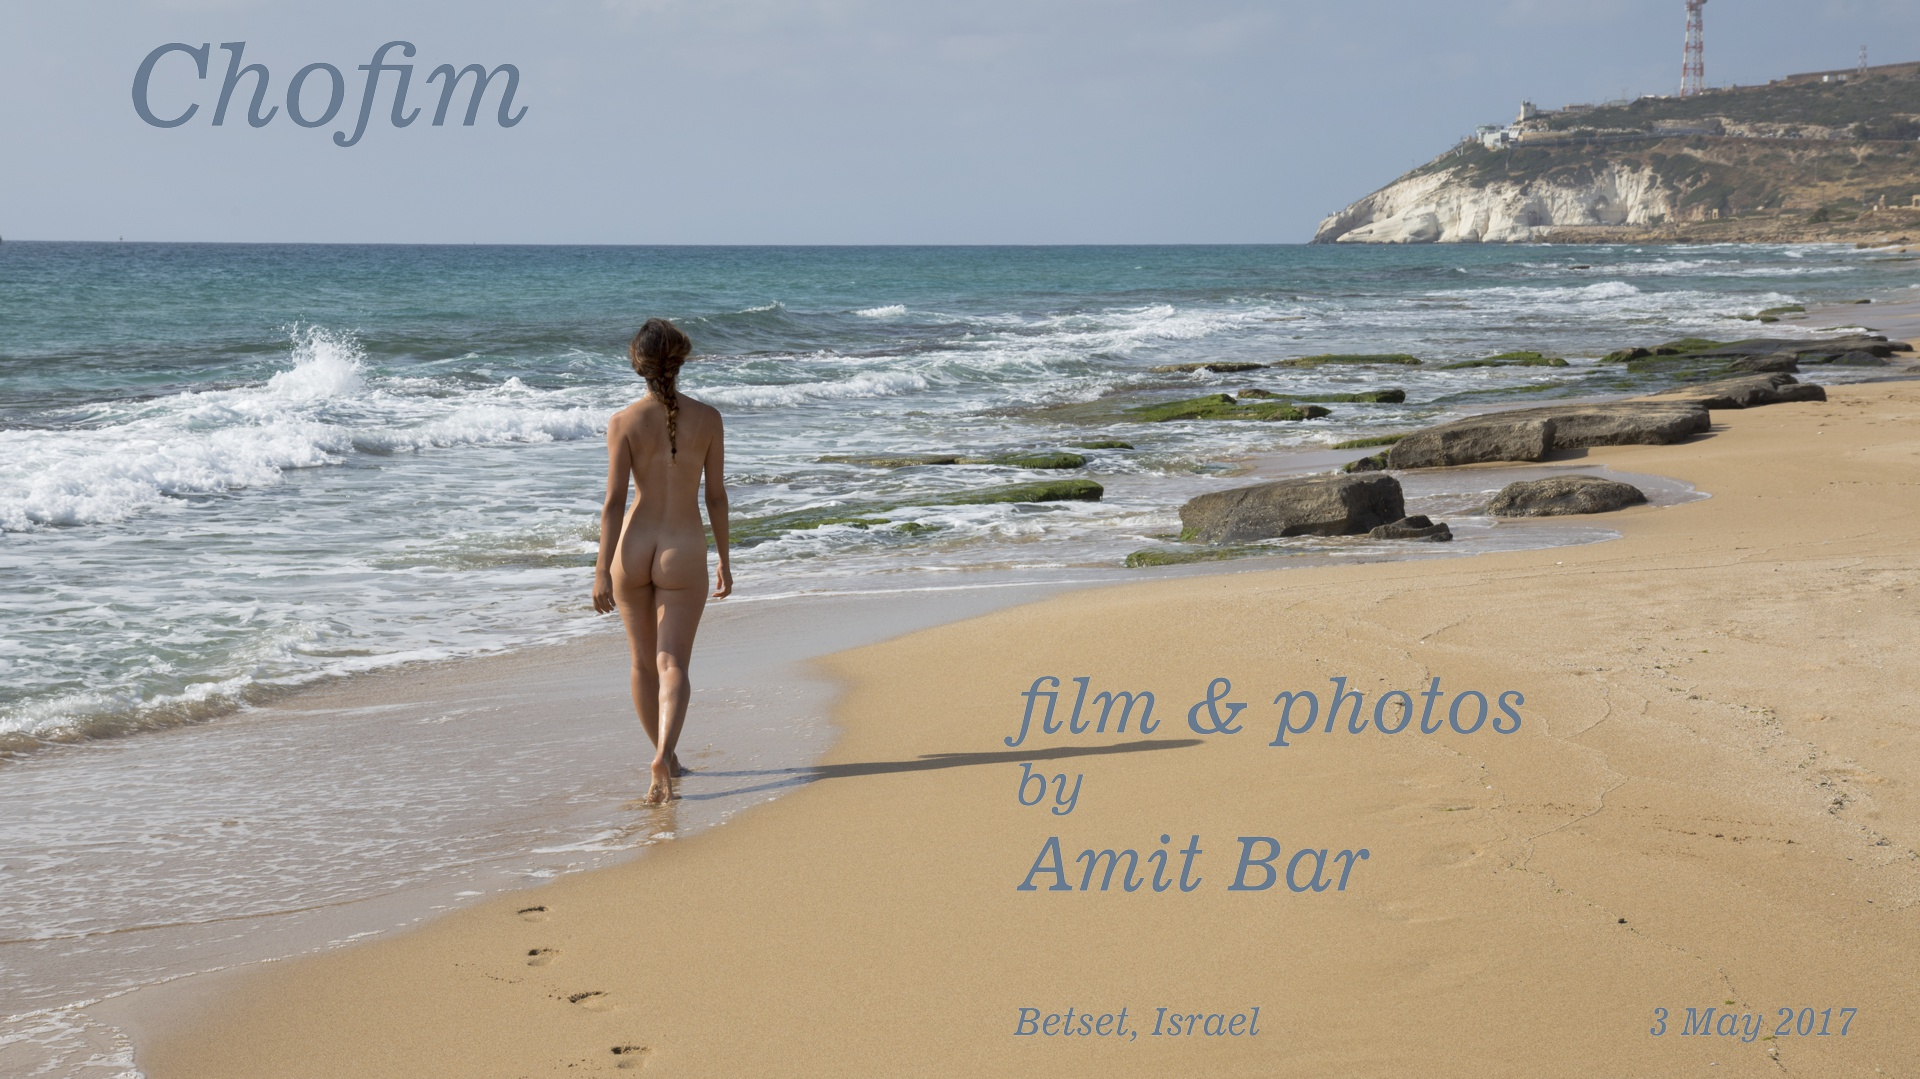 Carmela is walking on the beach and is entering nude to the sea, whereafter she appears blue as the sea-water. Some body-paint helped doing that...